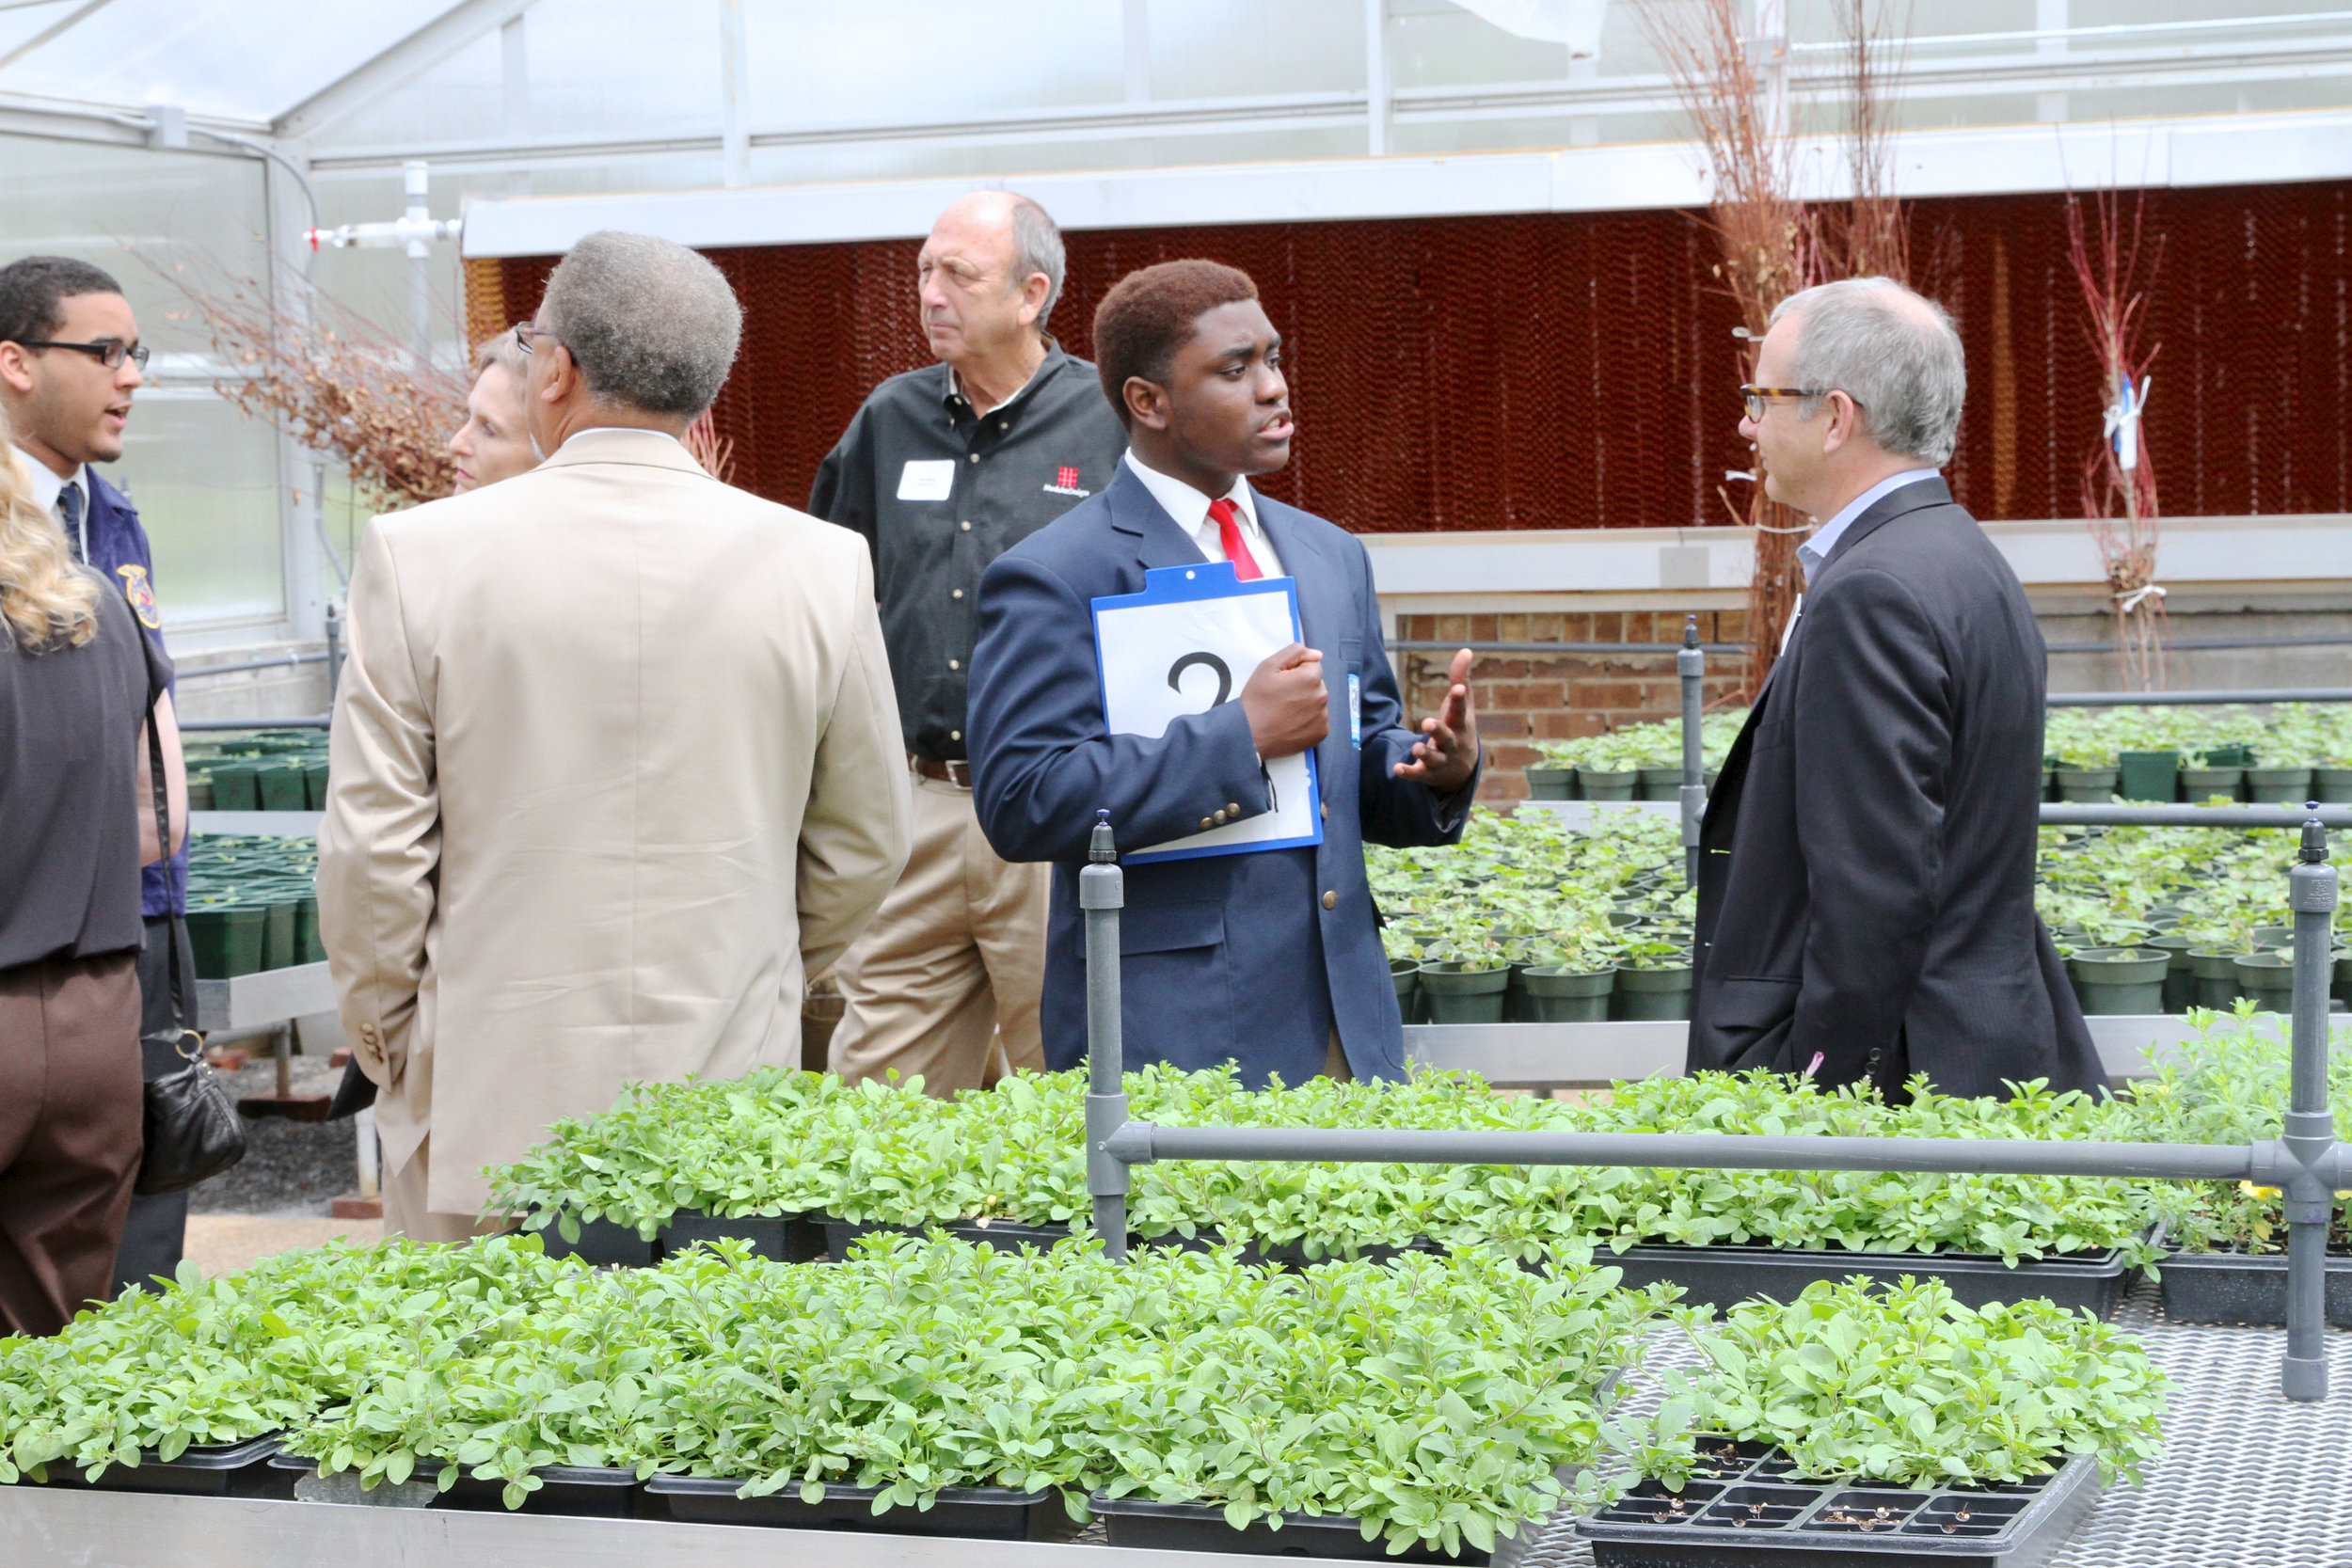 VIPs tour the Academy of Alternative Energy, Sustainability, and Logistics greenhouse.